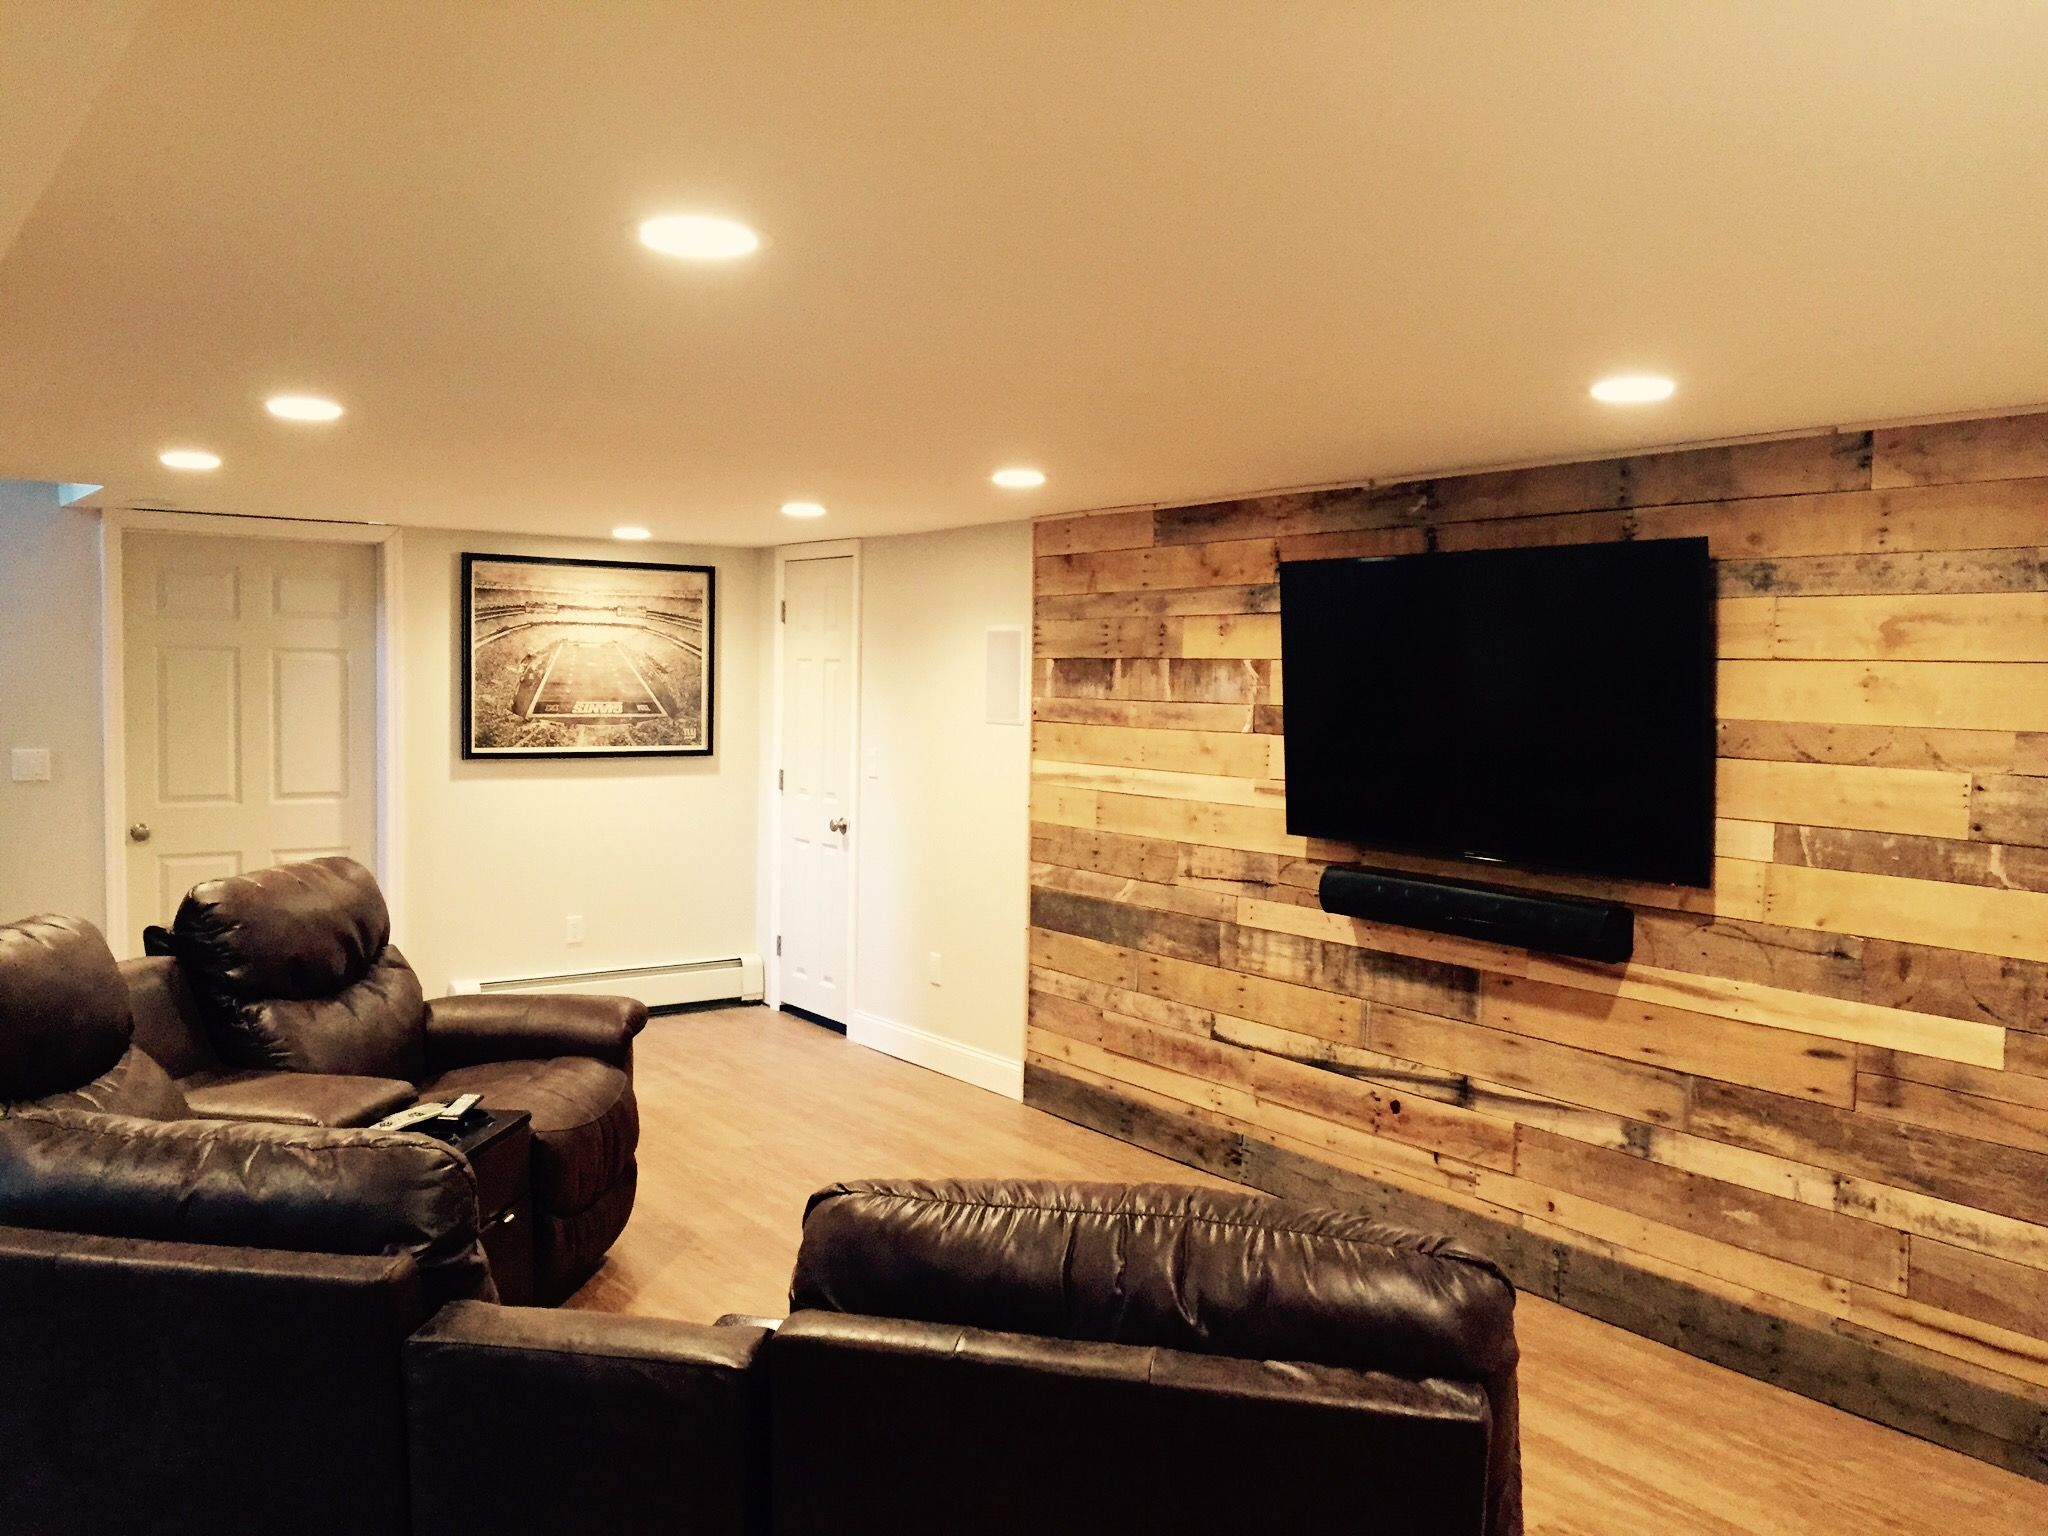 Pallet wall in our finished basement dave cave cost 0 for Cost of building a basement per square foot